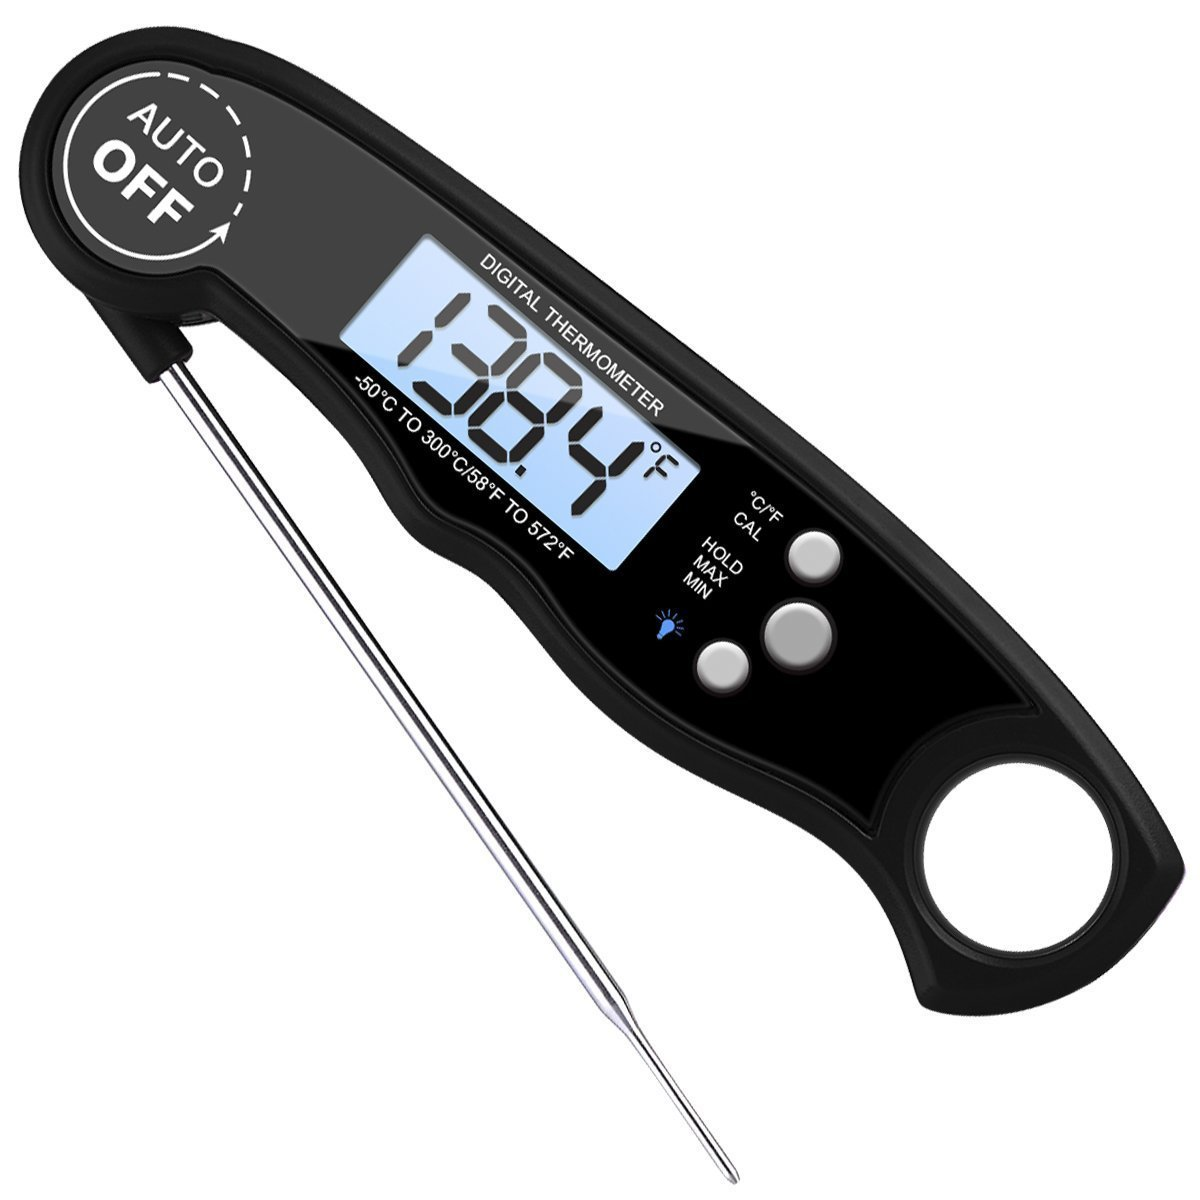 Upgraded With Backlight And Waterproof Best Ultra Fast Digital Ki Latest Technology Garden Supplies Fashion Instant Read Meat Thermometer For Grill And Cooking Bbq